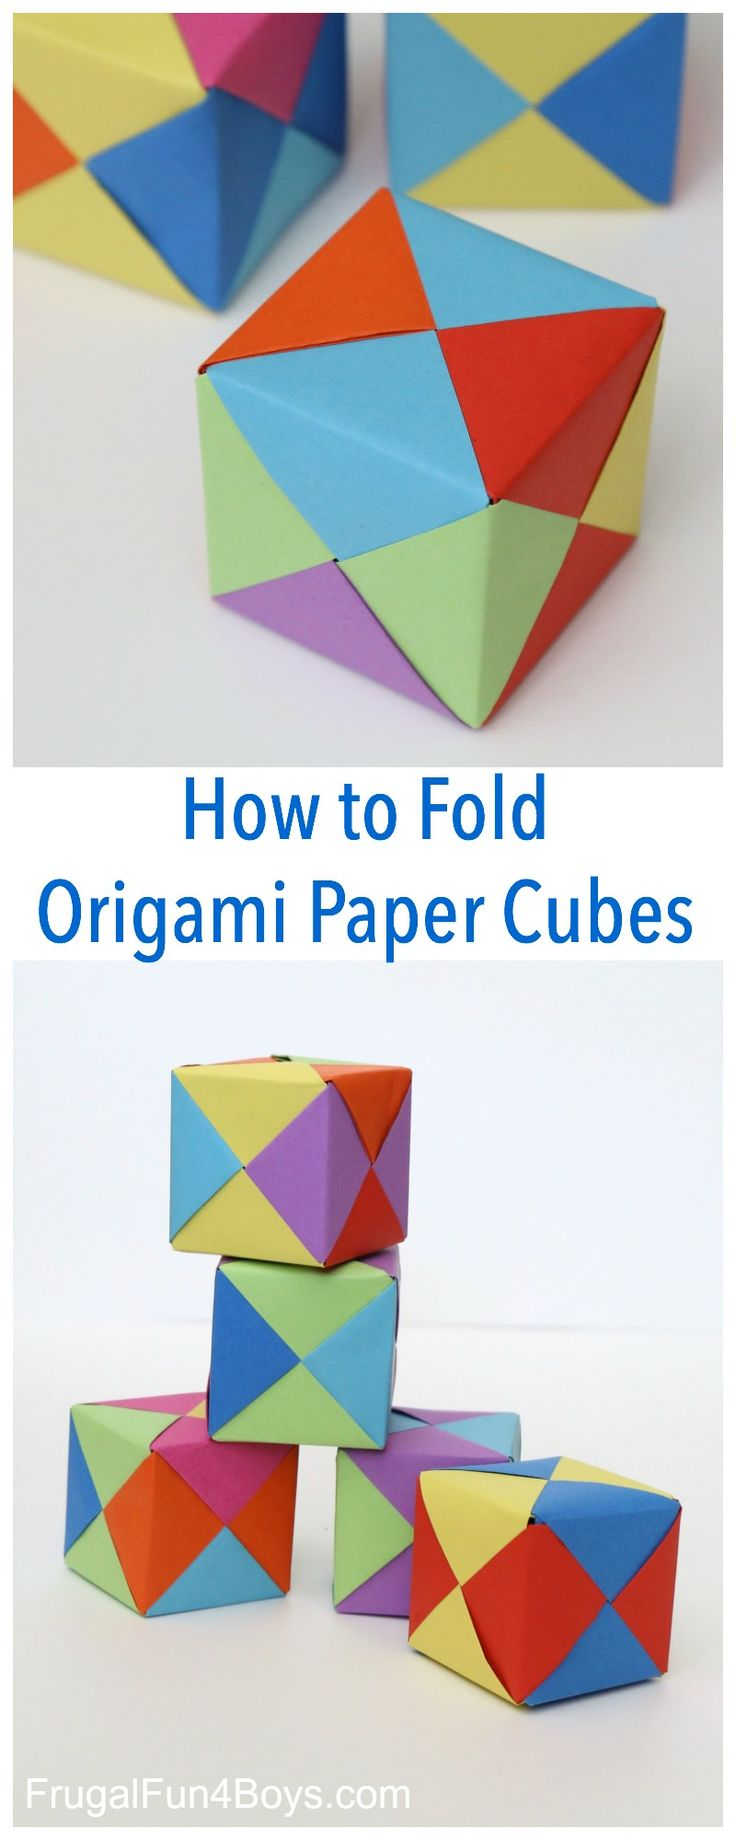 Here's another fun paper folding project!  Make some simple origami cubes.  These cubes are built from six different pieces of paper that fit together perfectly.  They hold together without any tape or glue!  After learning how to make paper ninja stars, my 8 year old was excited to try this project. I found this project …